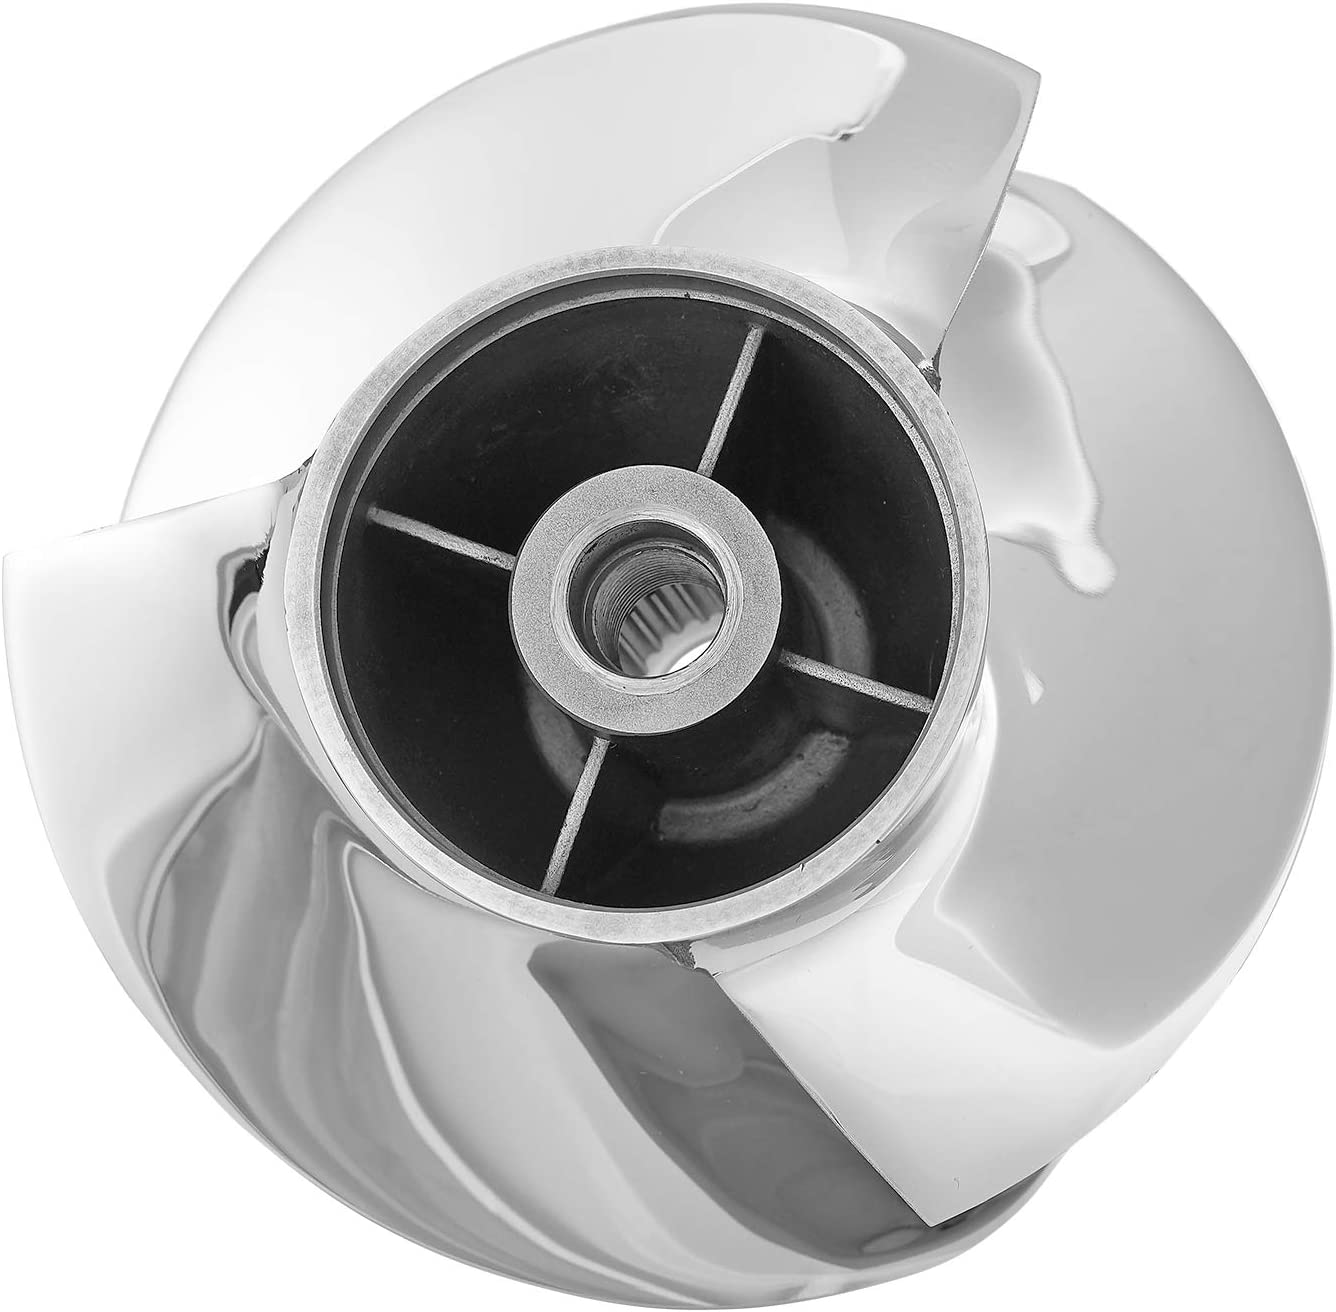 Adonis Impeller Compatible with Polaris 1996-1998 SLTX 1050 1997 SL900 SL 1050 2000-2002 Virage TX Genesis 2001-2002 Virage TXI 2001-2004 Genesis I